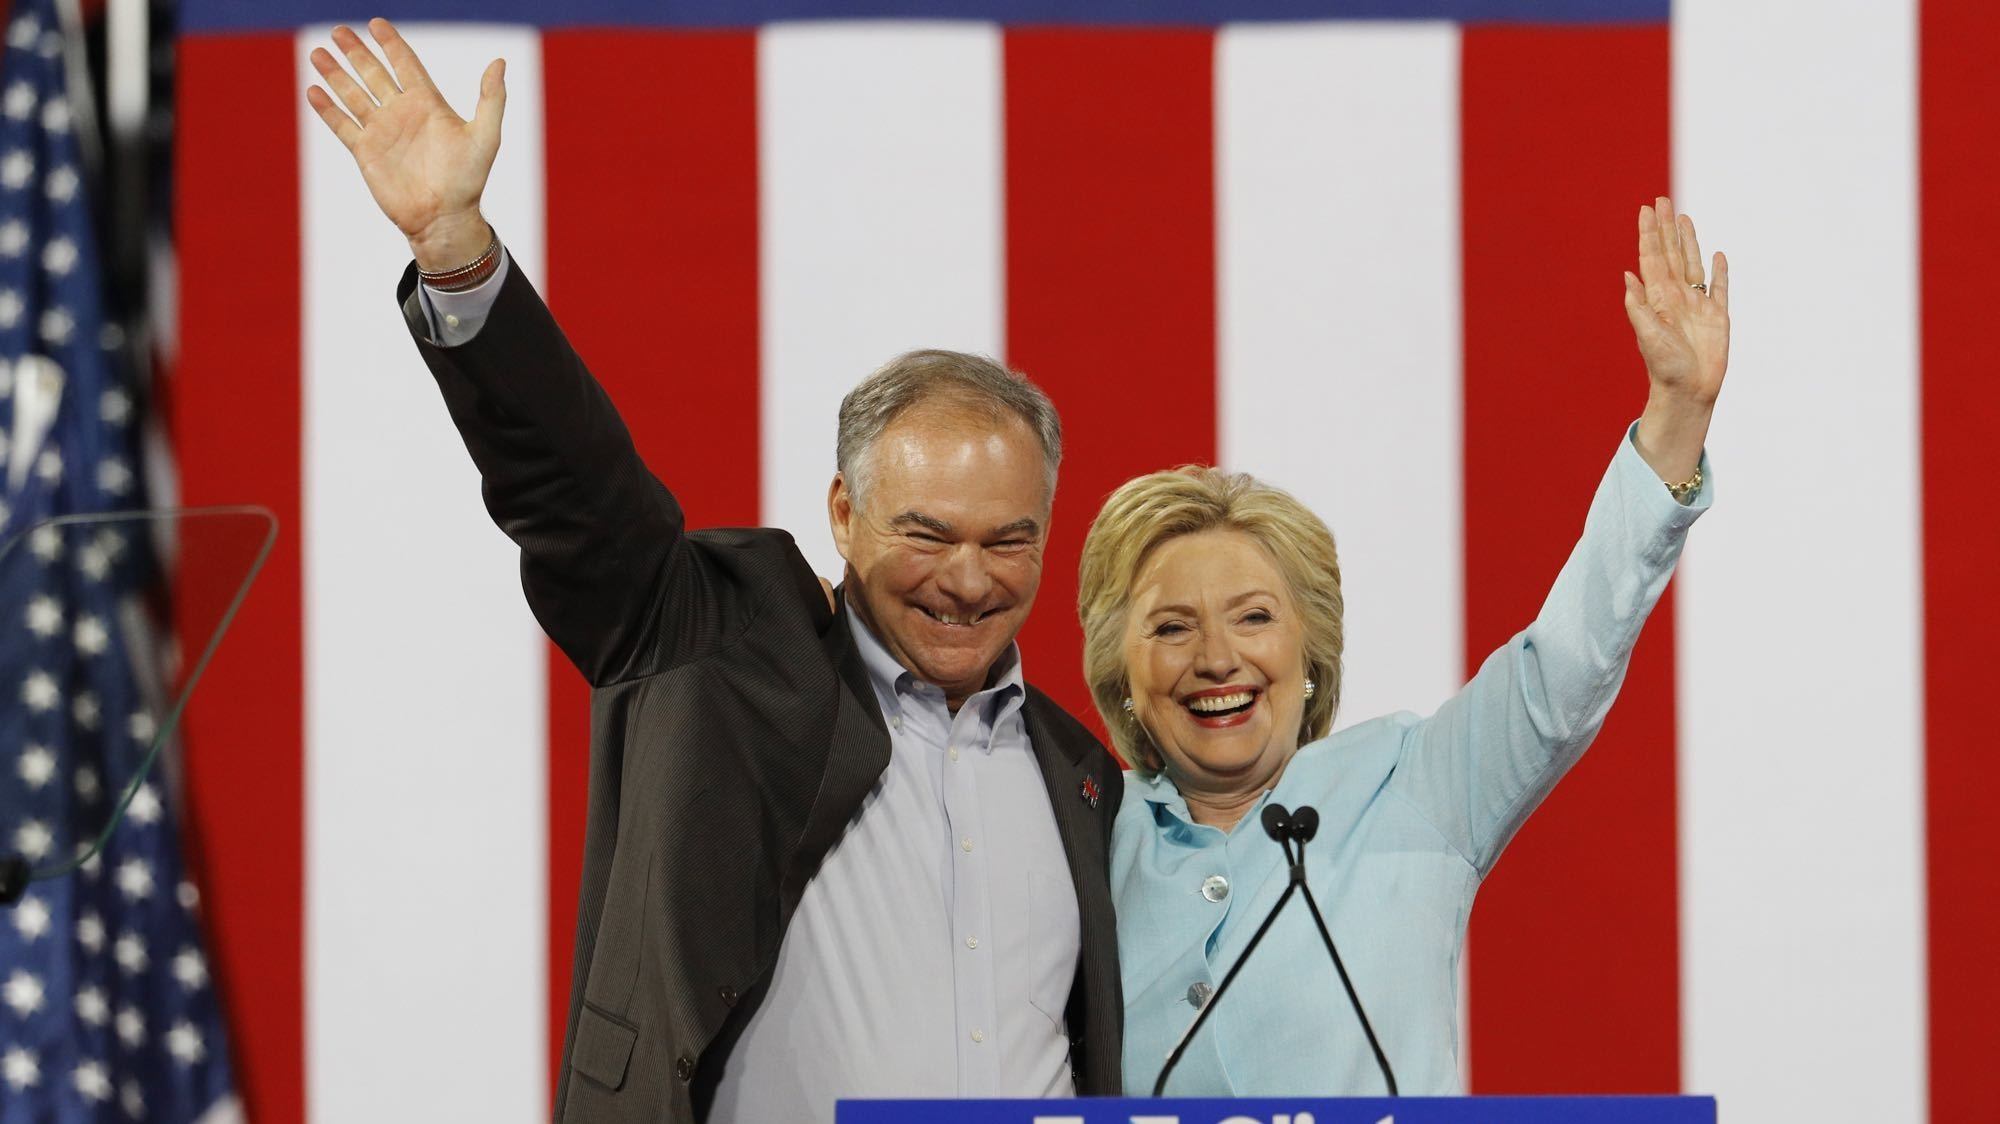 Clinton taps Tim Kaine for vice president, but fails to impress Sanders supporters